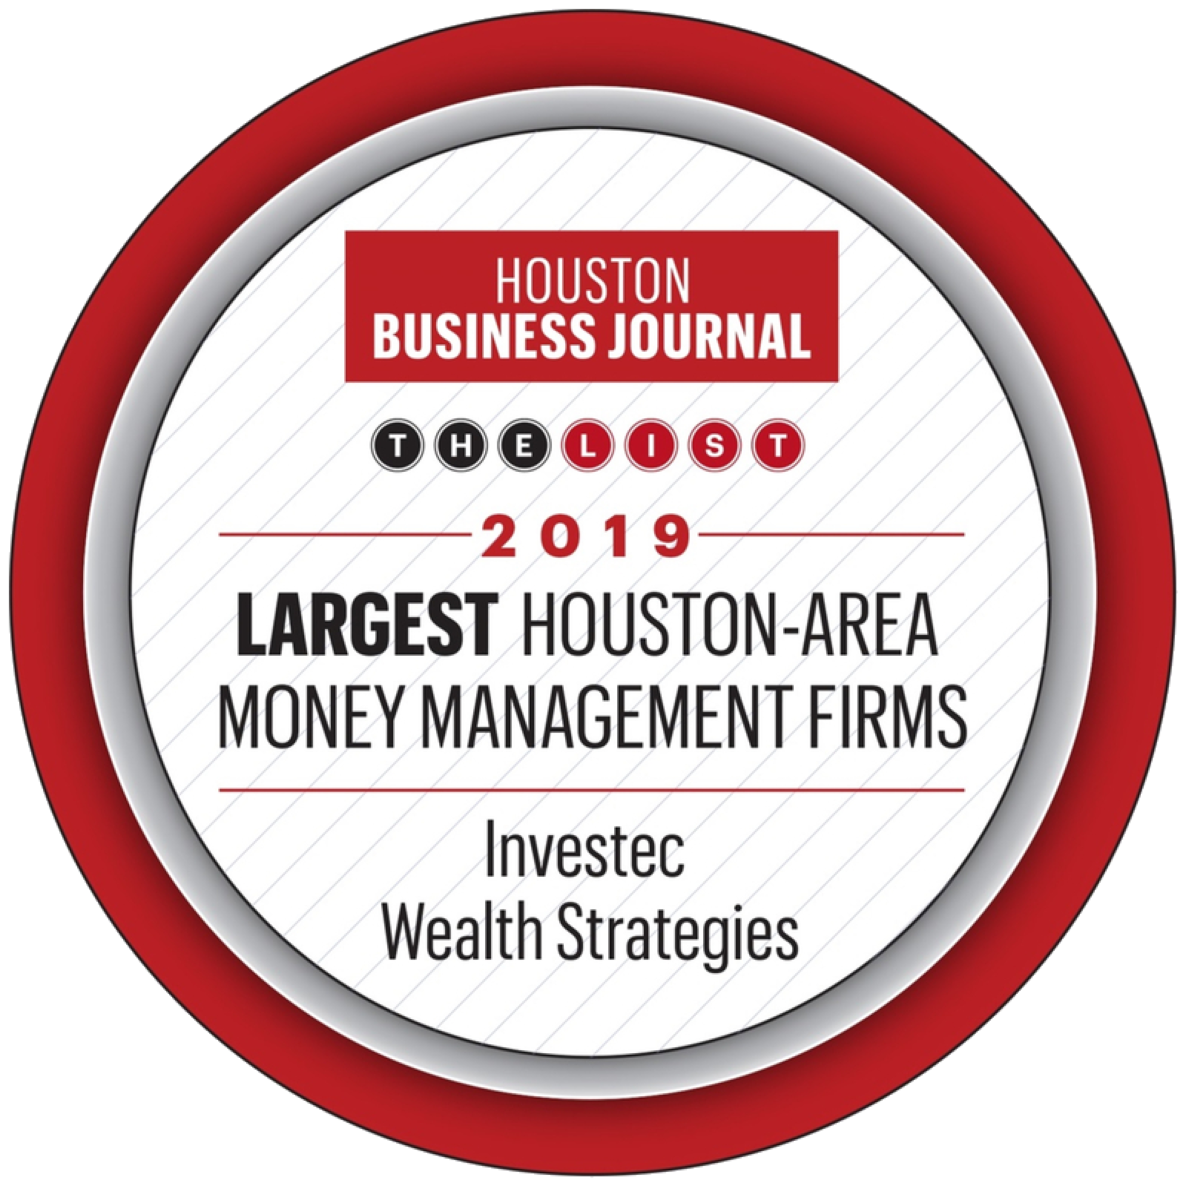 Investec - Houston Business Journal Largest Houston-Area Money Management Firms, 2019